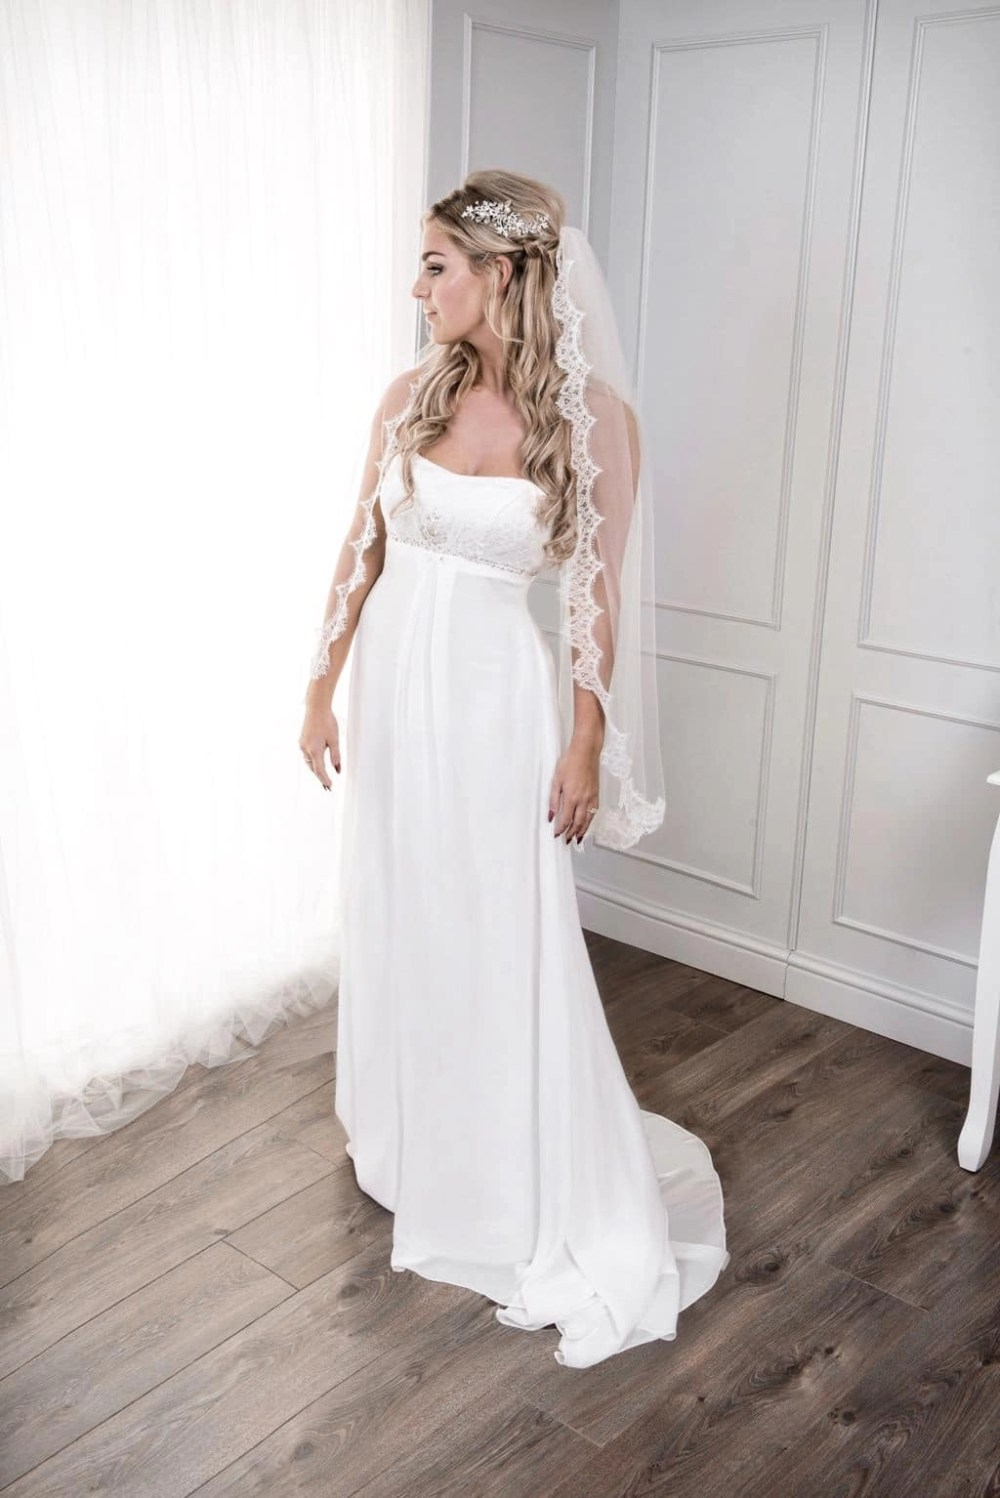 Bride in single layer fingertip length veil with French lace edge